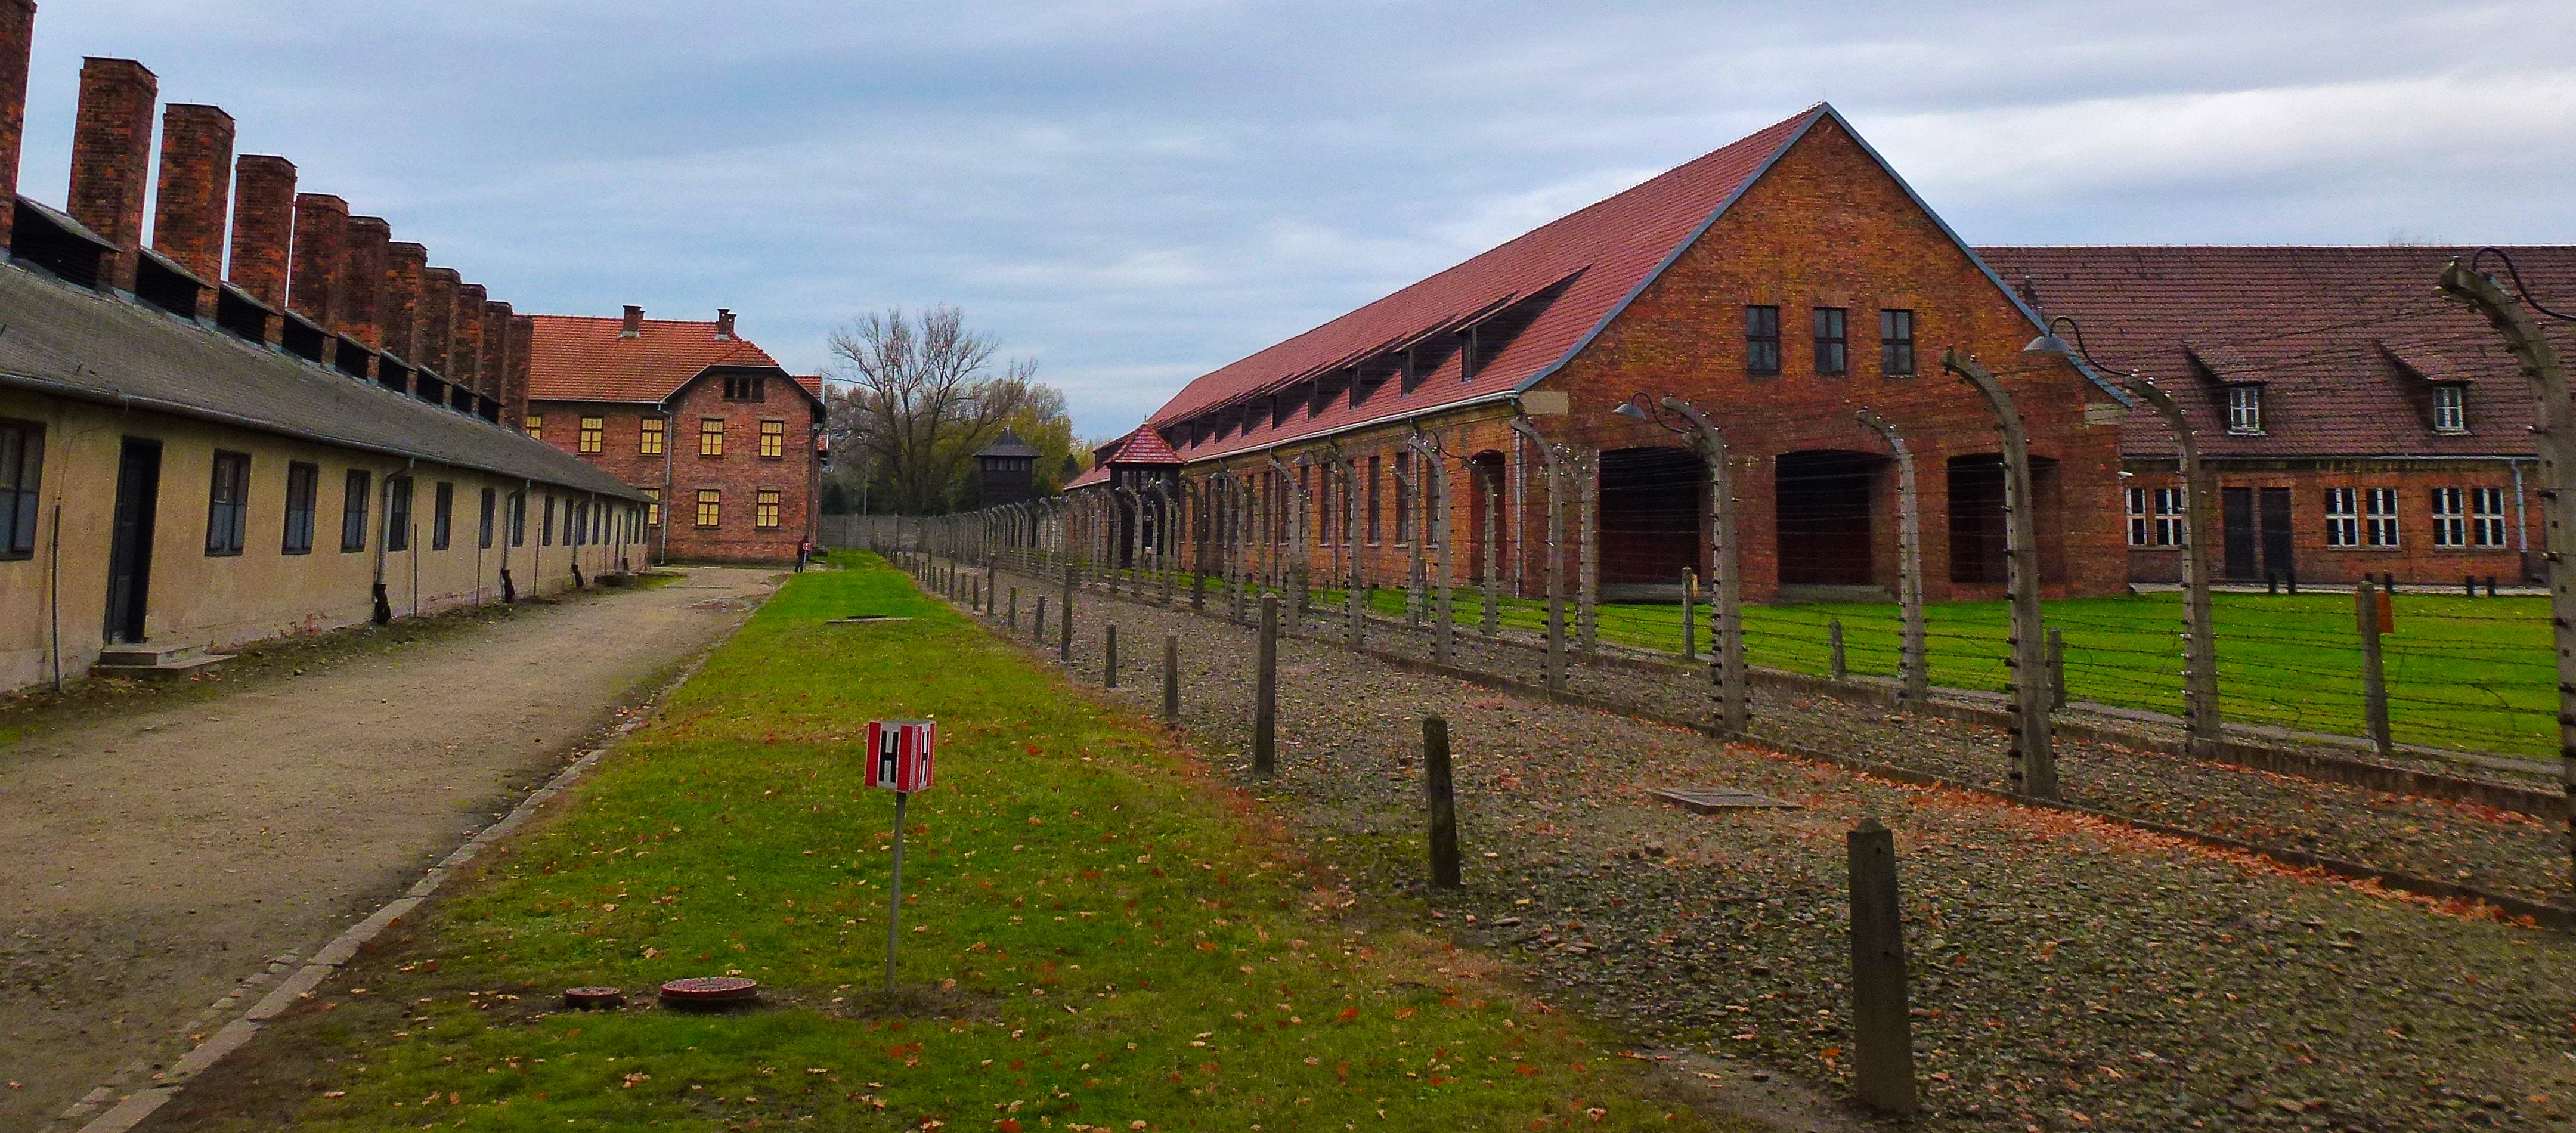 My Visit to Auschwitz